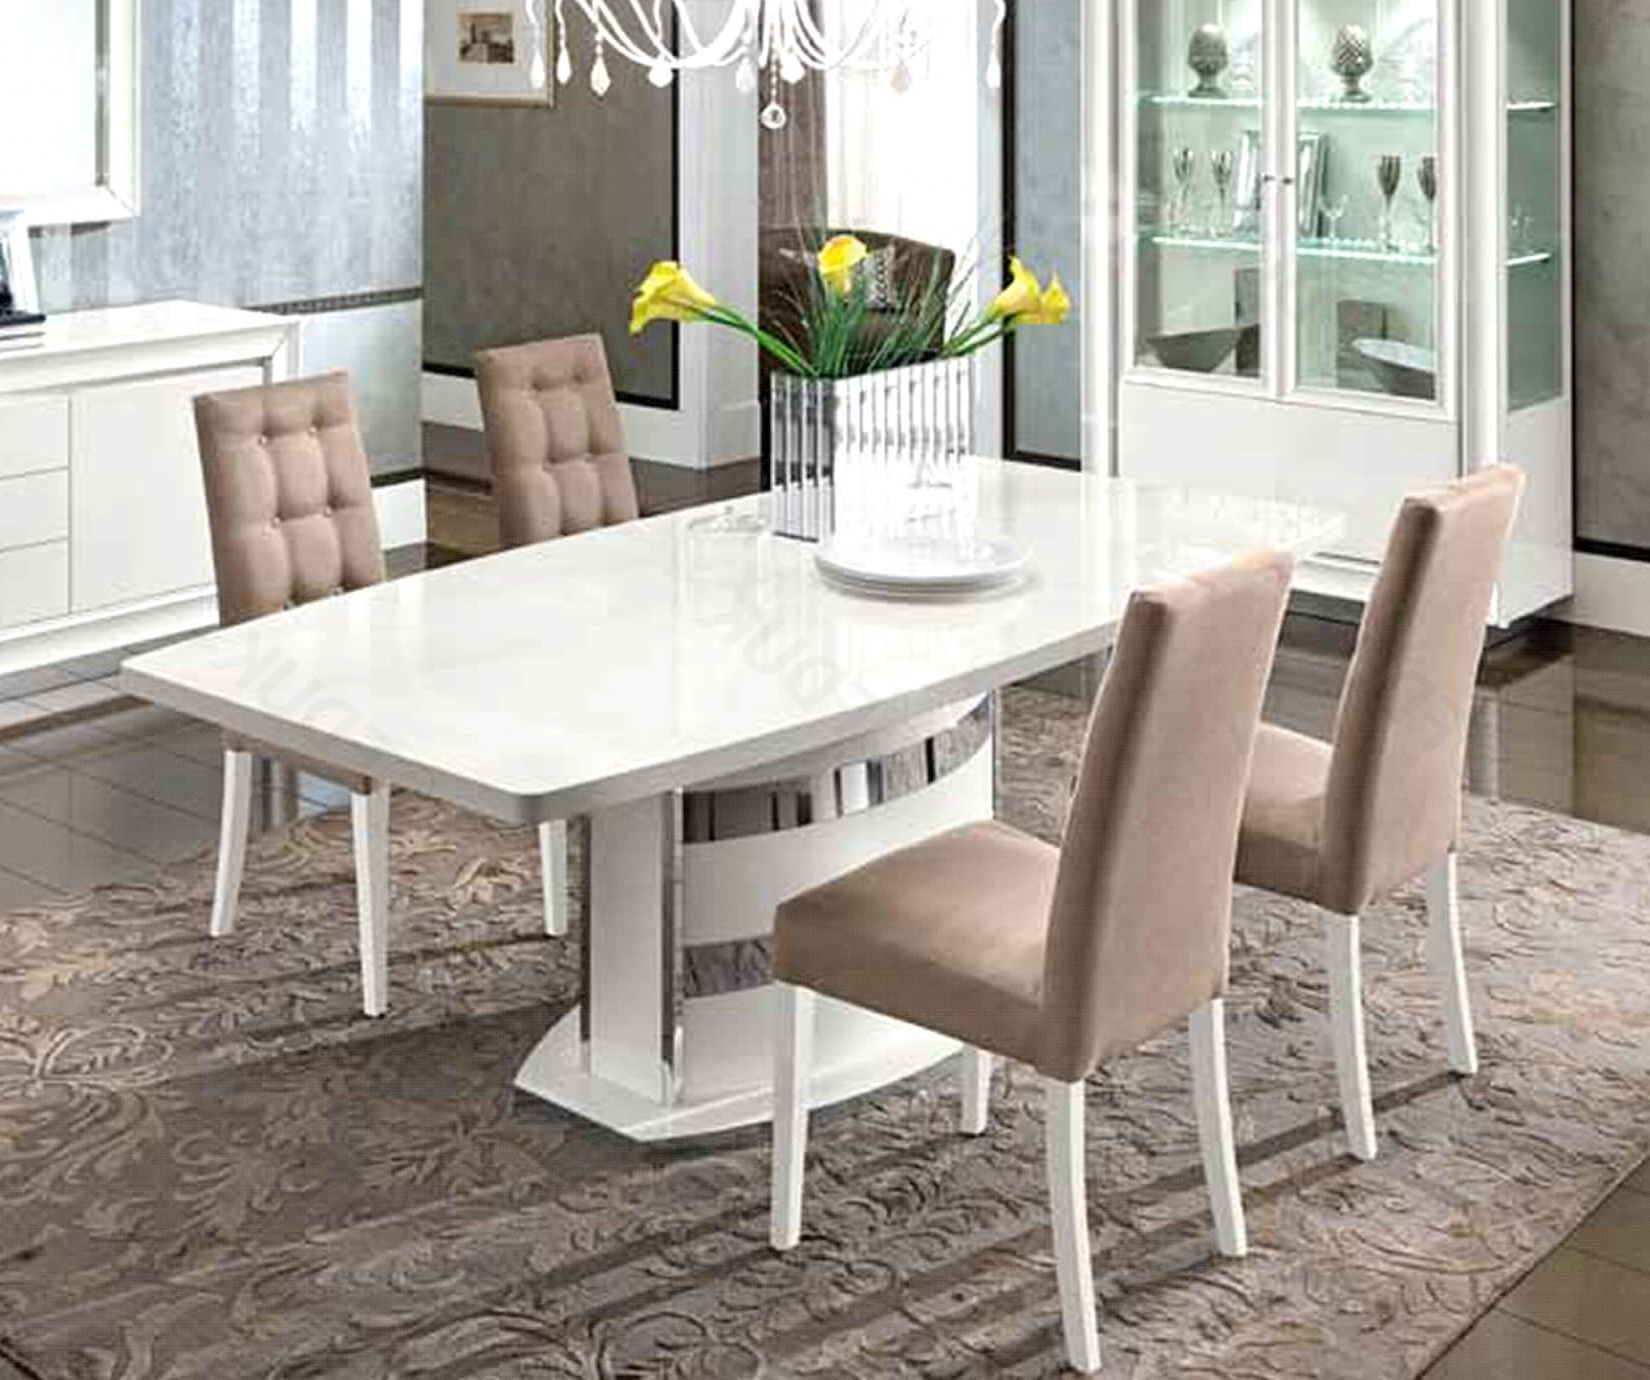 Dama Bianca White High Gloss Extending In White Gloss Dining Room Tables (View 4 of 25)